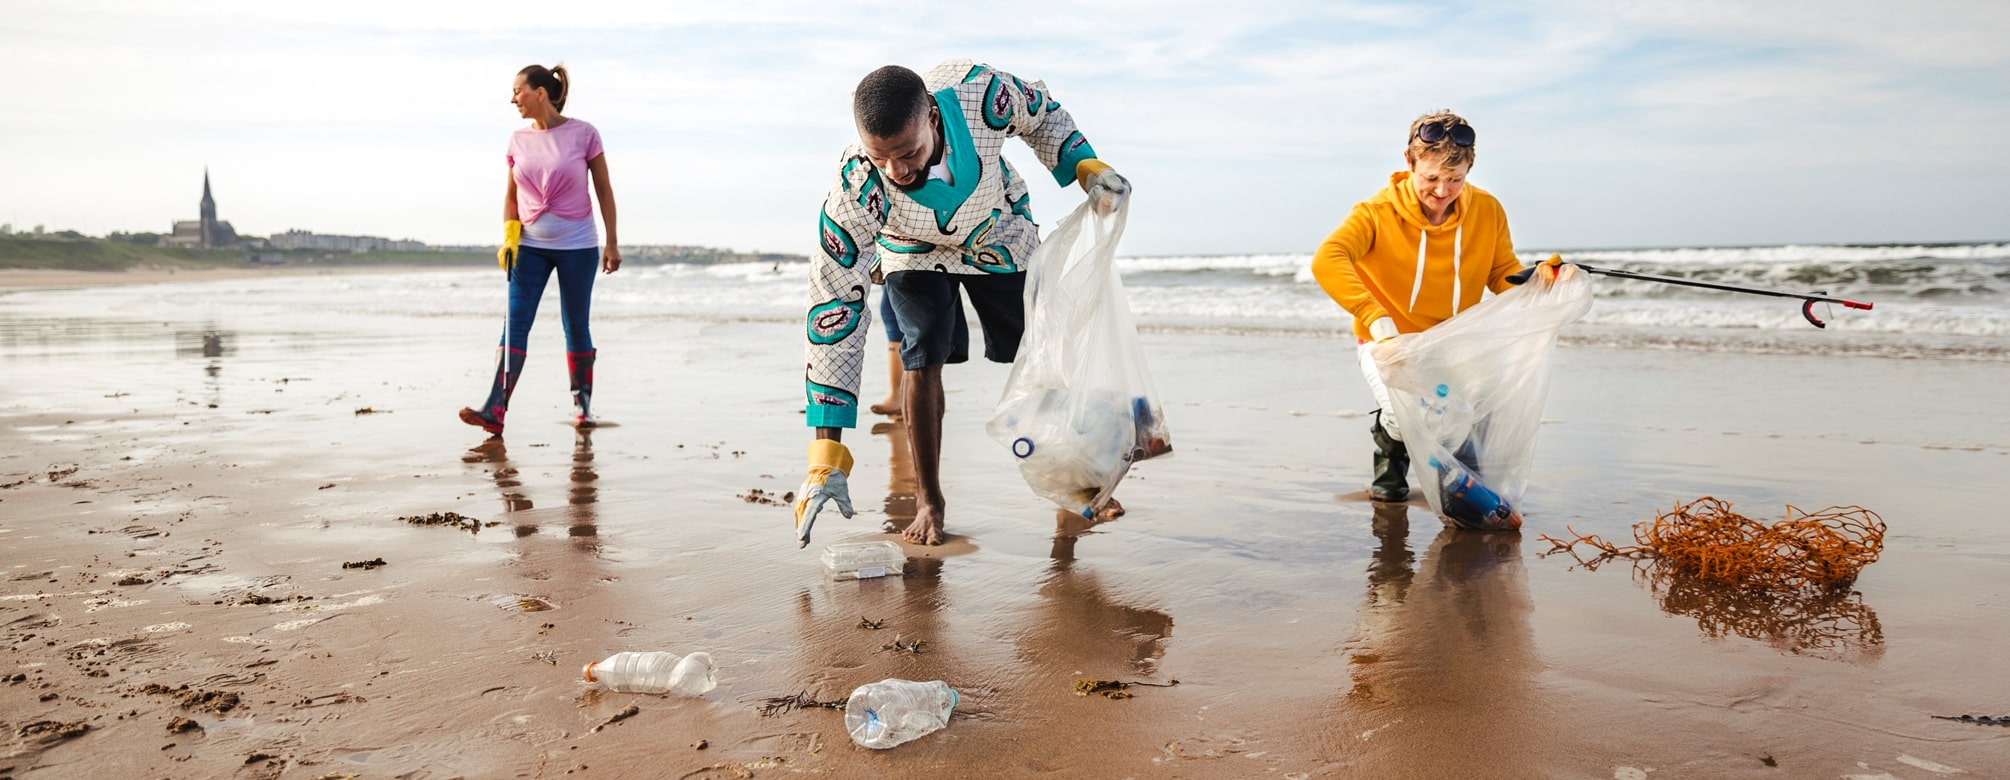 People collecting plastic waste on the beach.